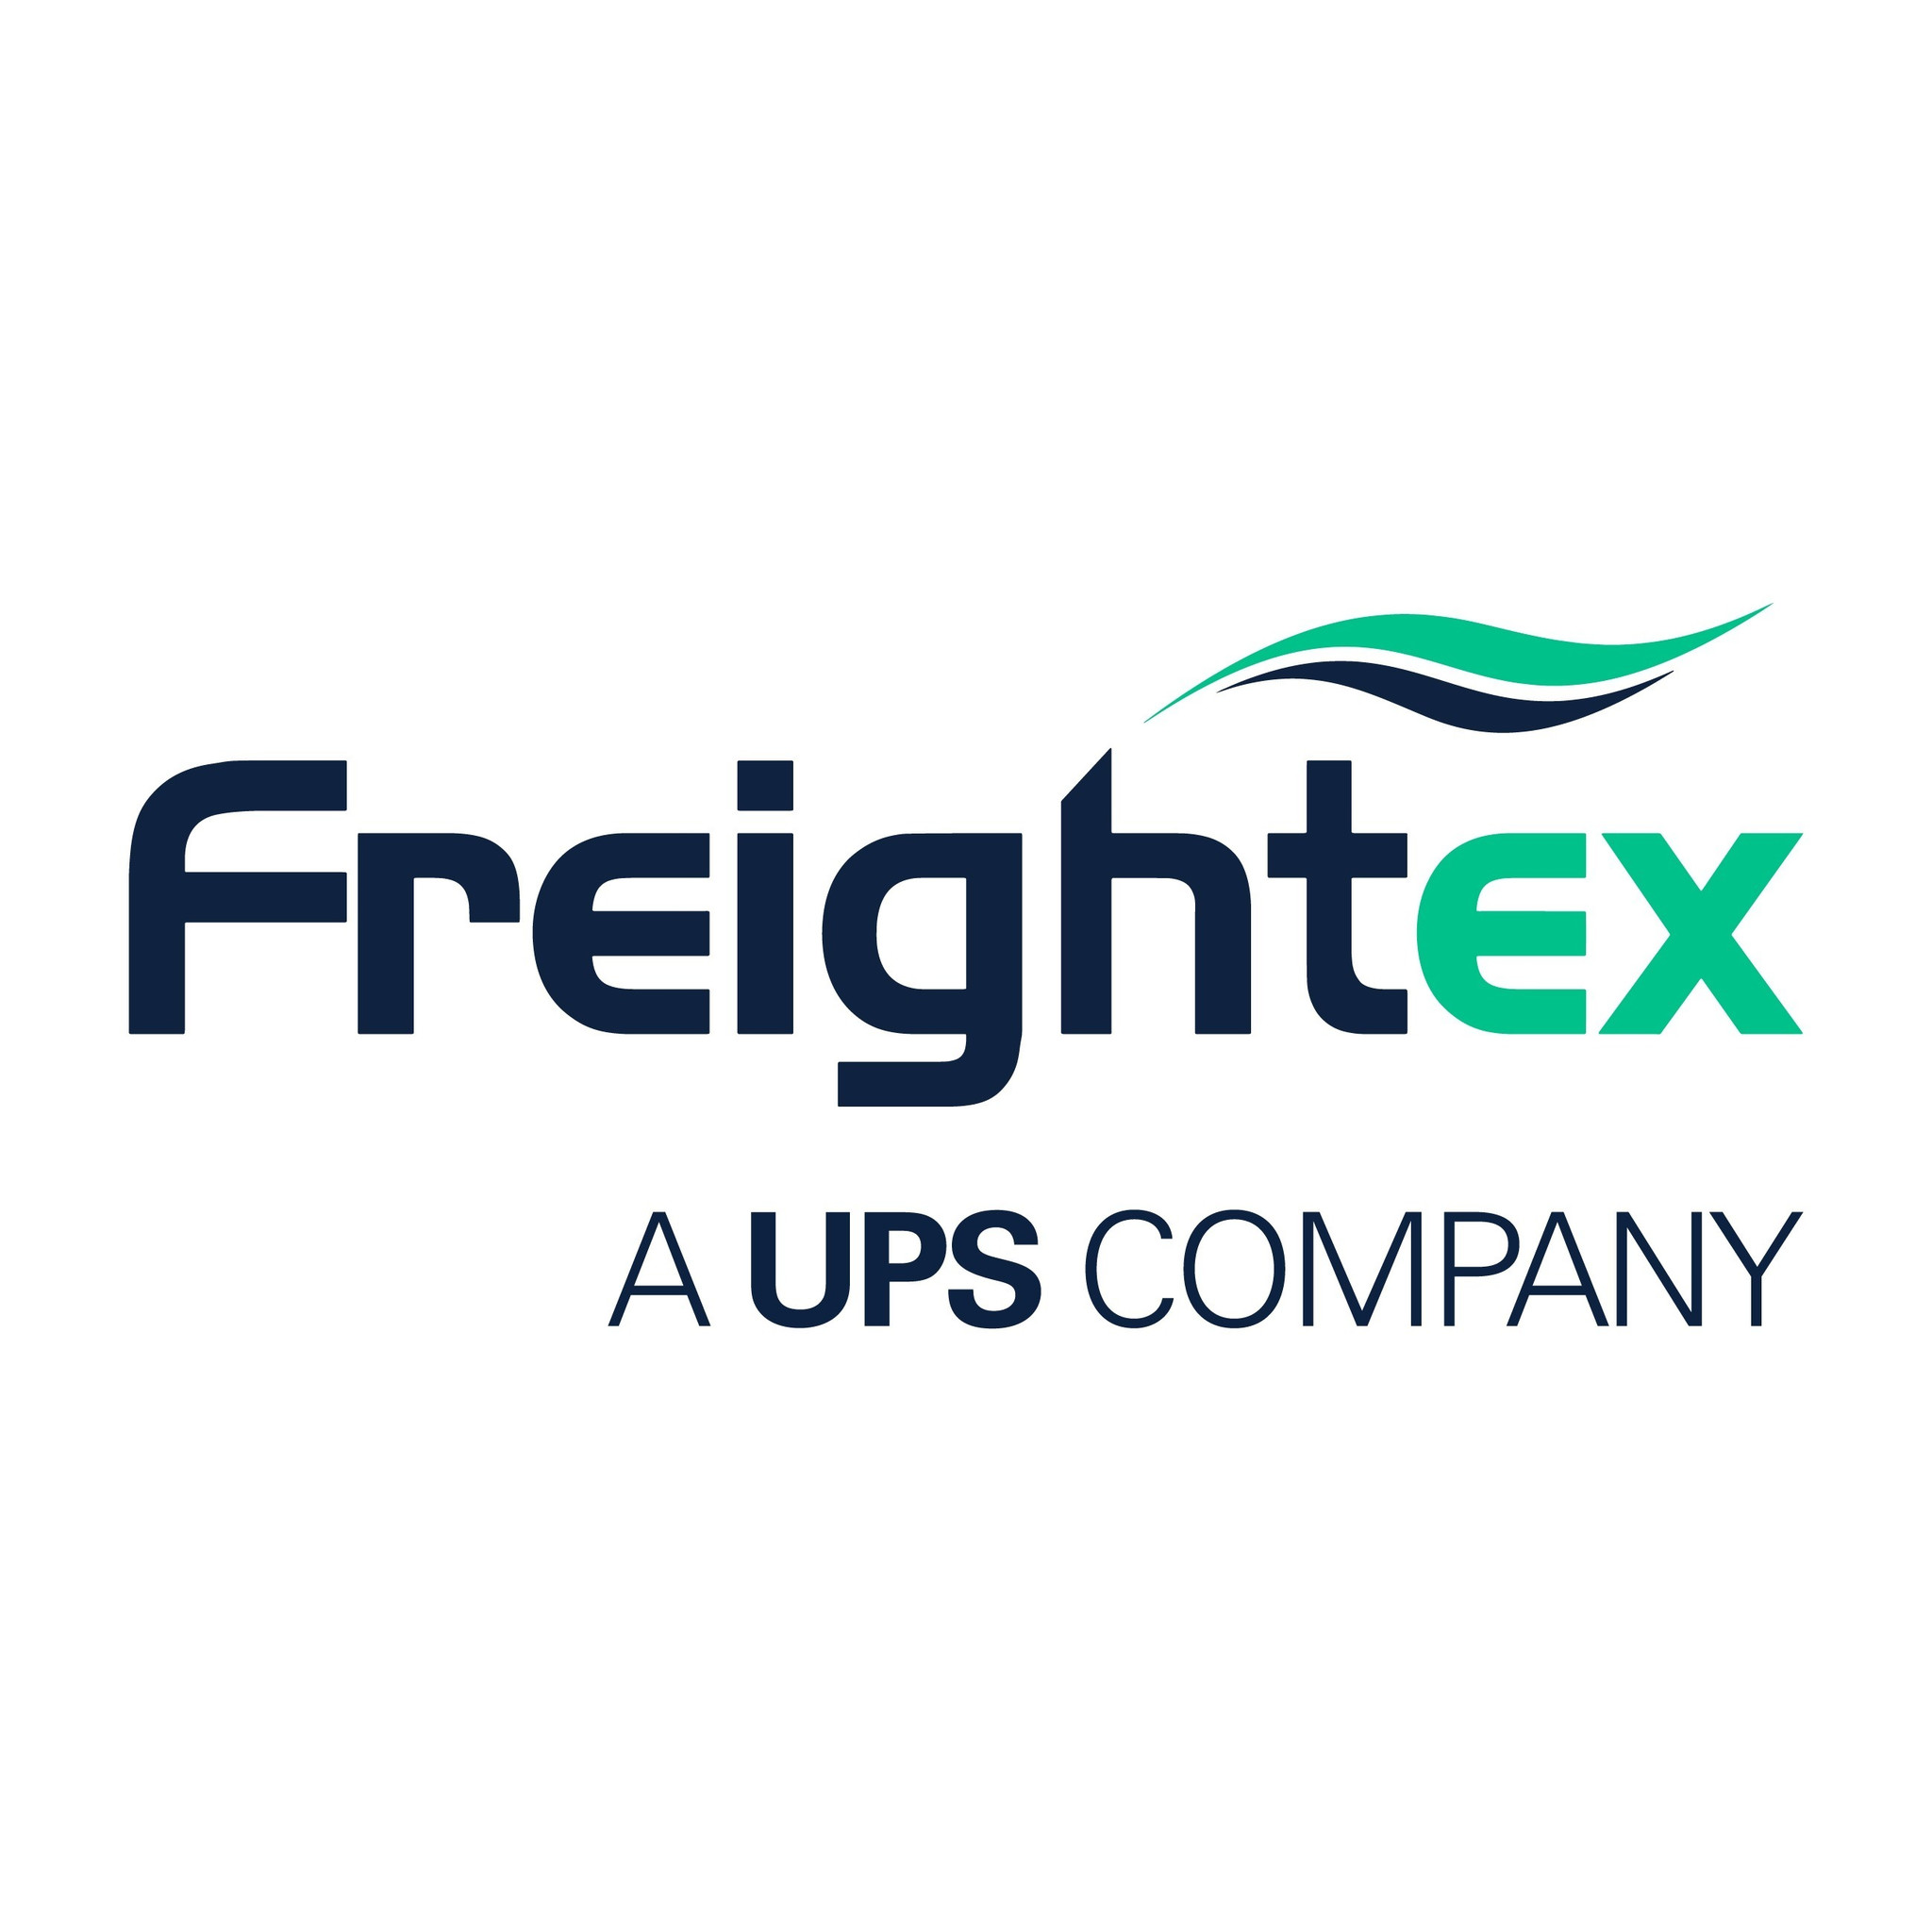 Sale of Freightex to UPS Logo